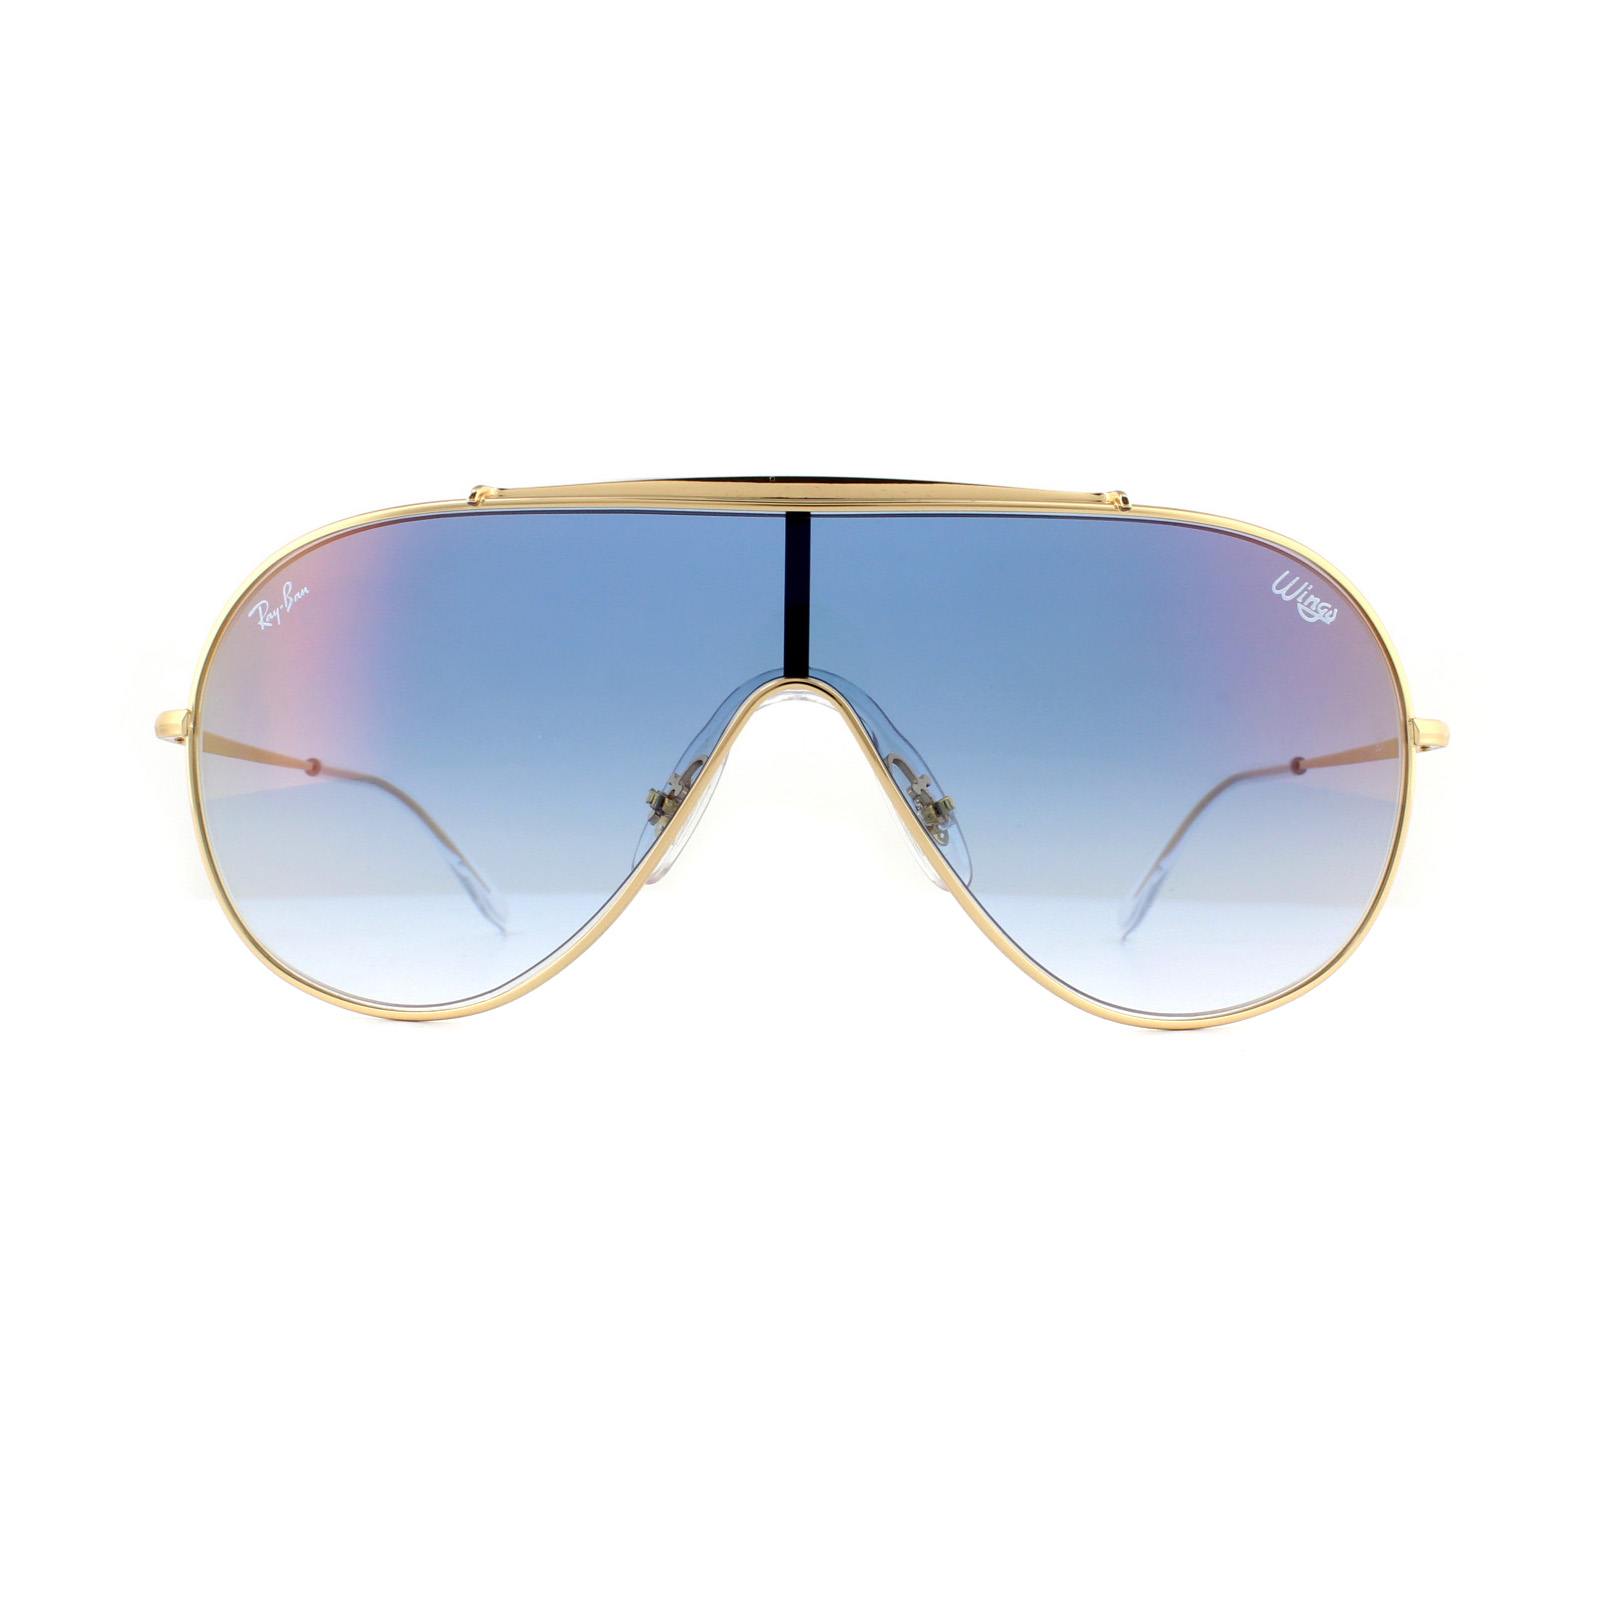 5bb2eebcfc Sentinel Ray-Ban Sunglasses Wings RB3597 001 X0 Gold Blue Gradient Mirror